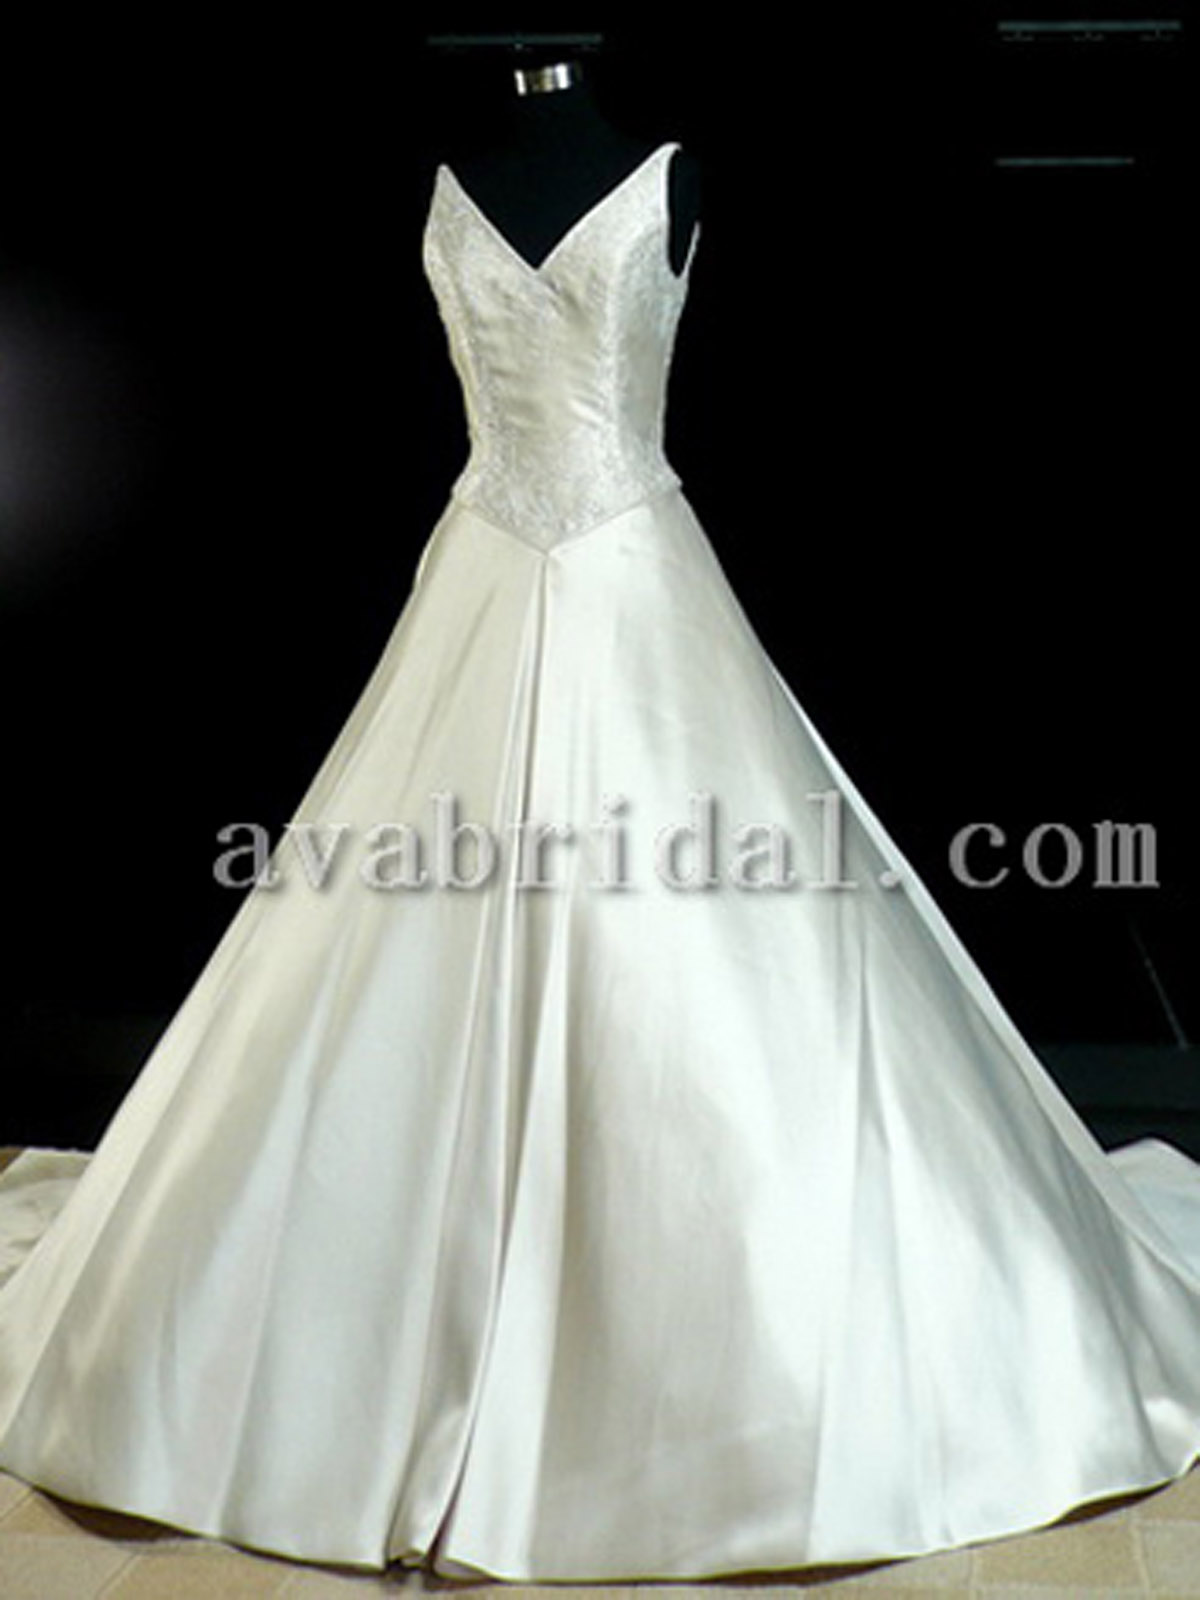 Royal Wedding Gown - Wilma - Front